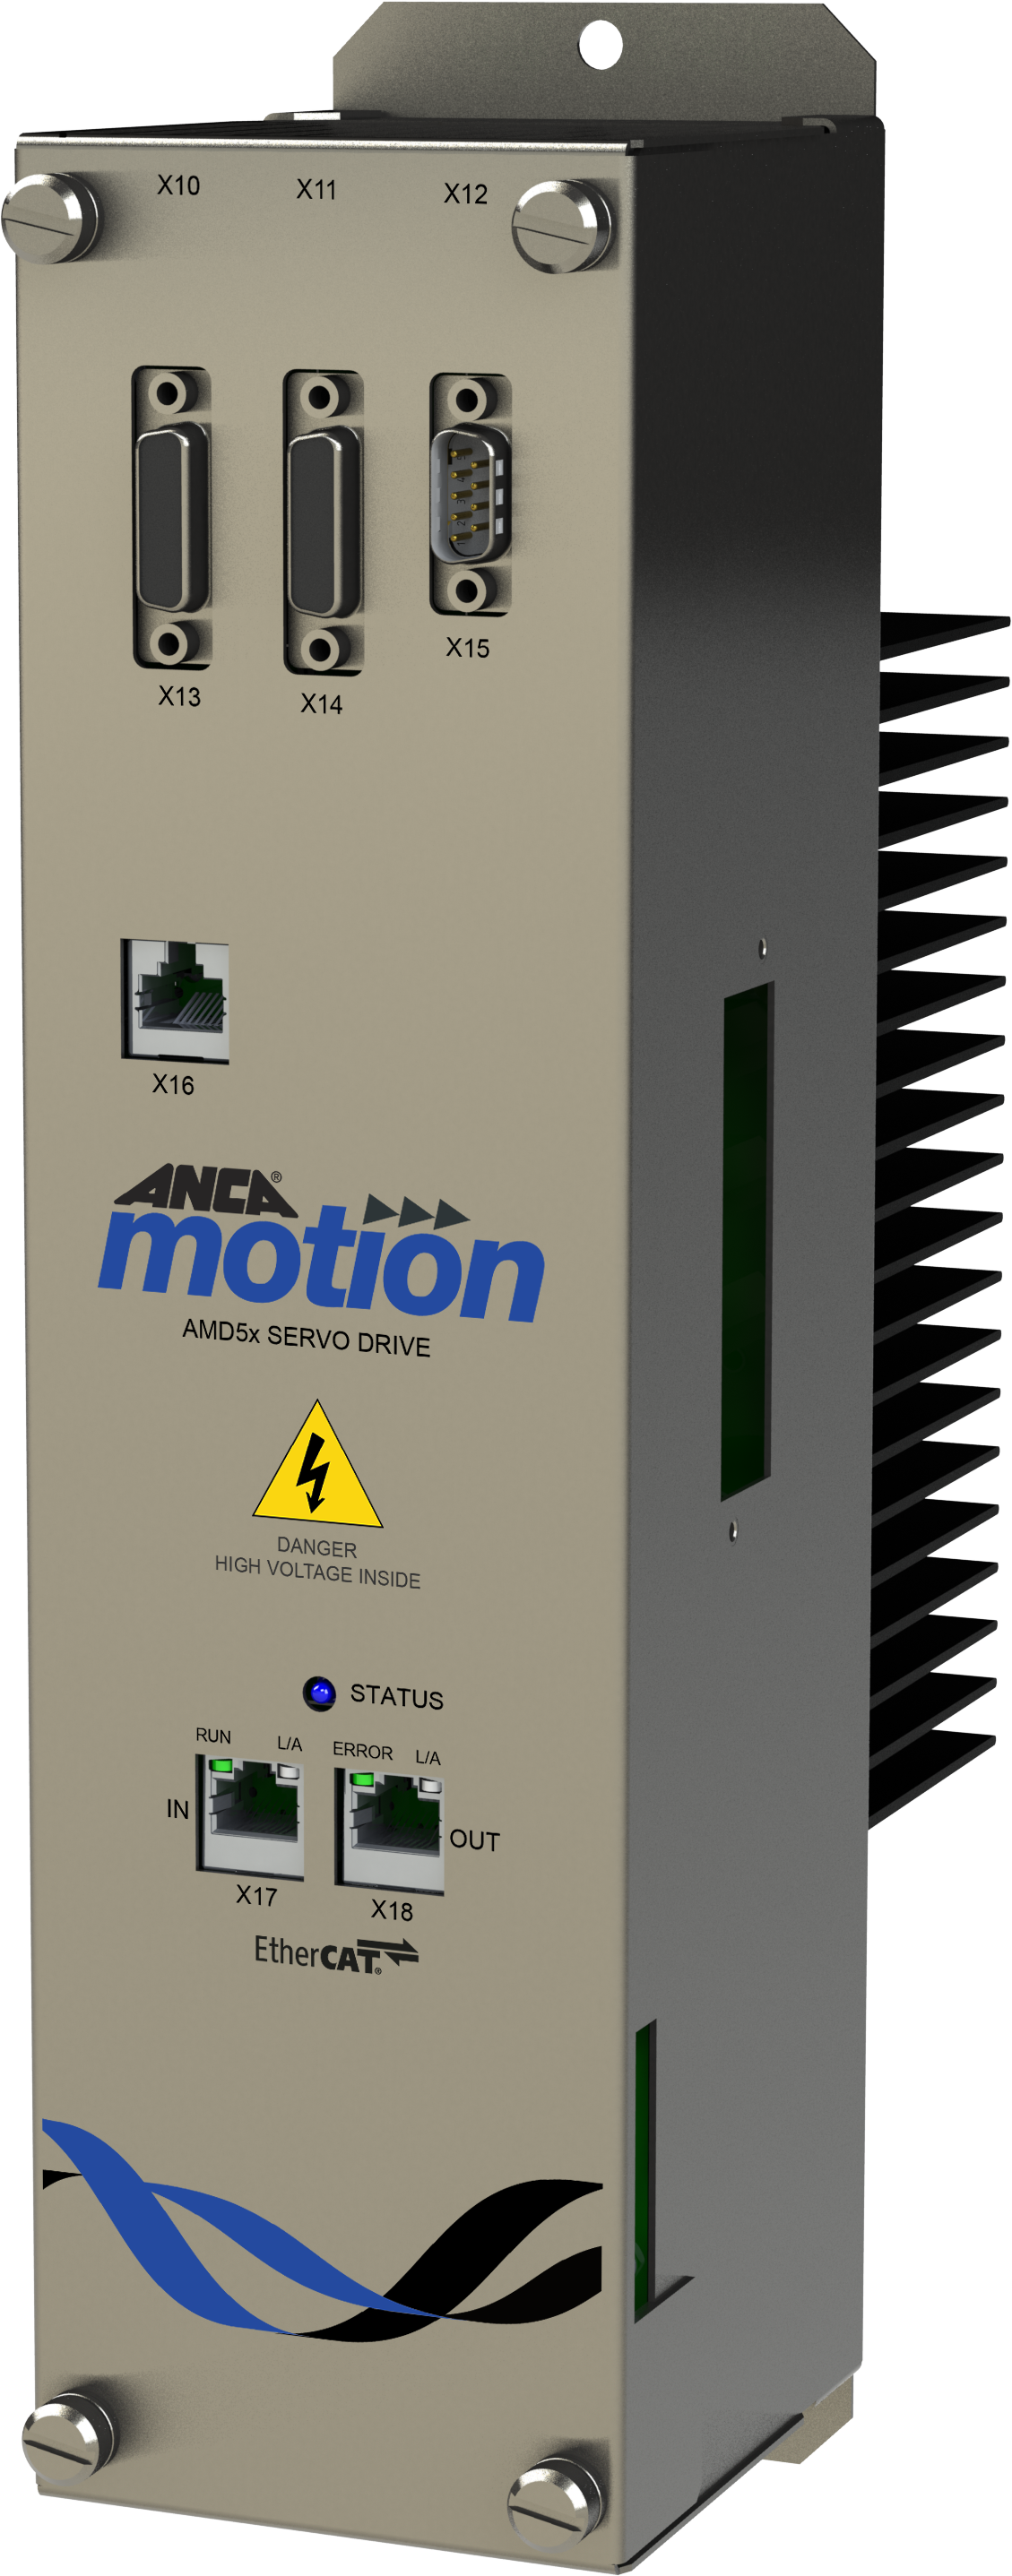 AMD5x Servo Drive and Infeed Unit - ANCA Motion